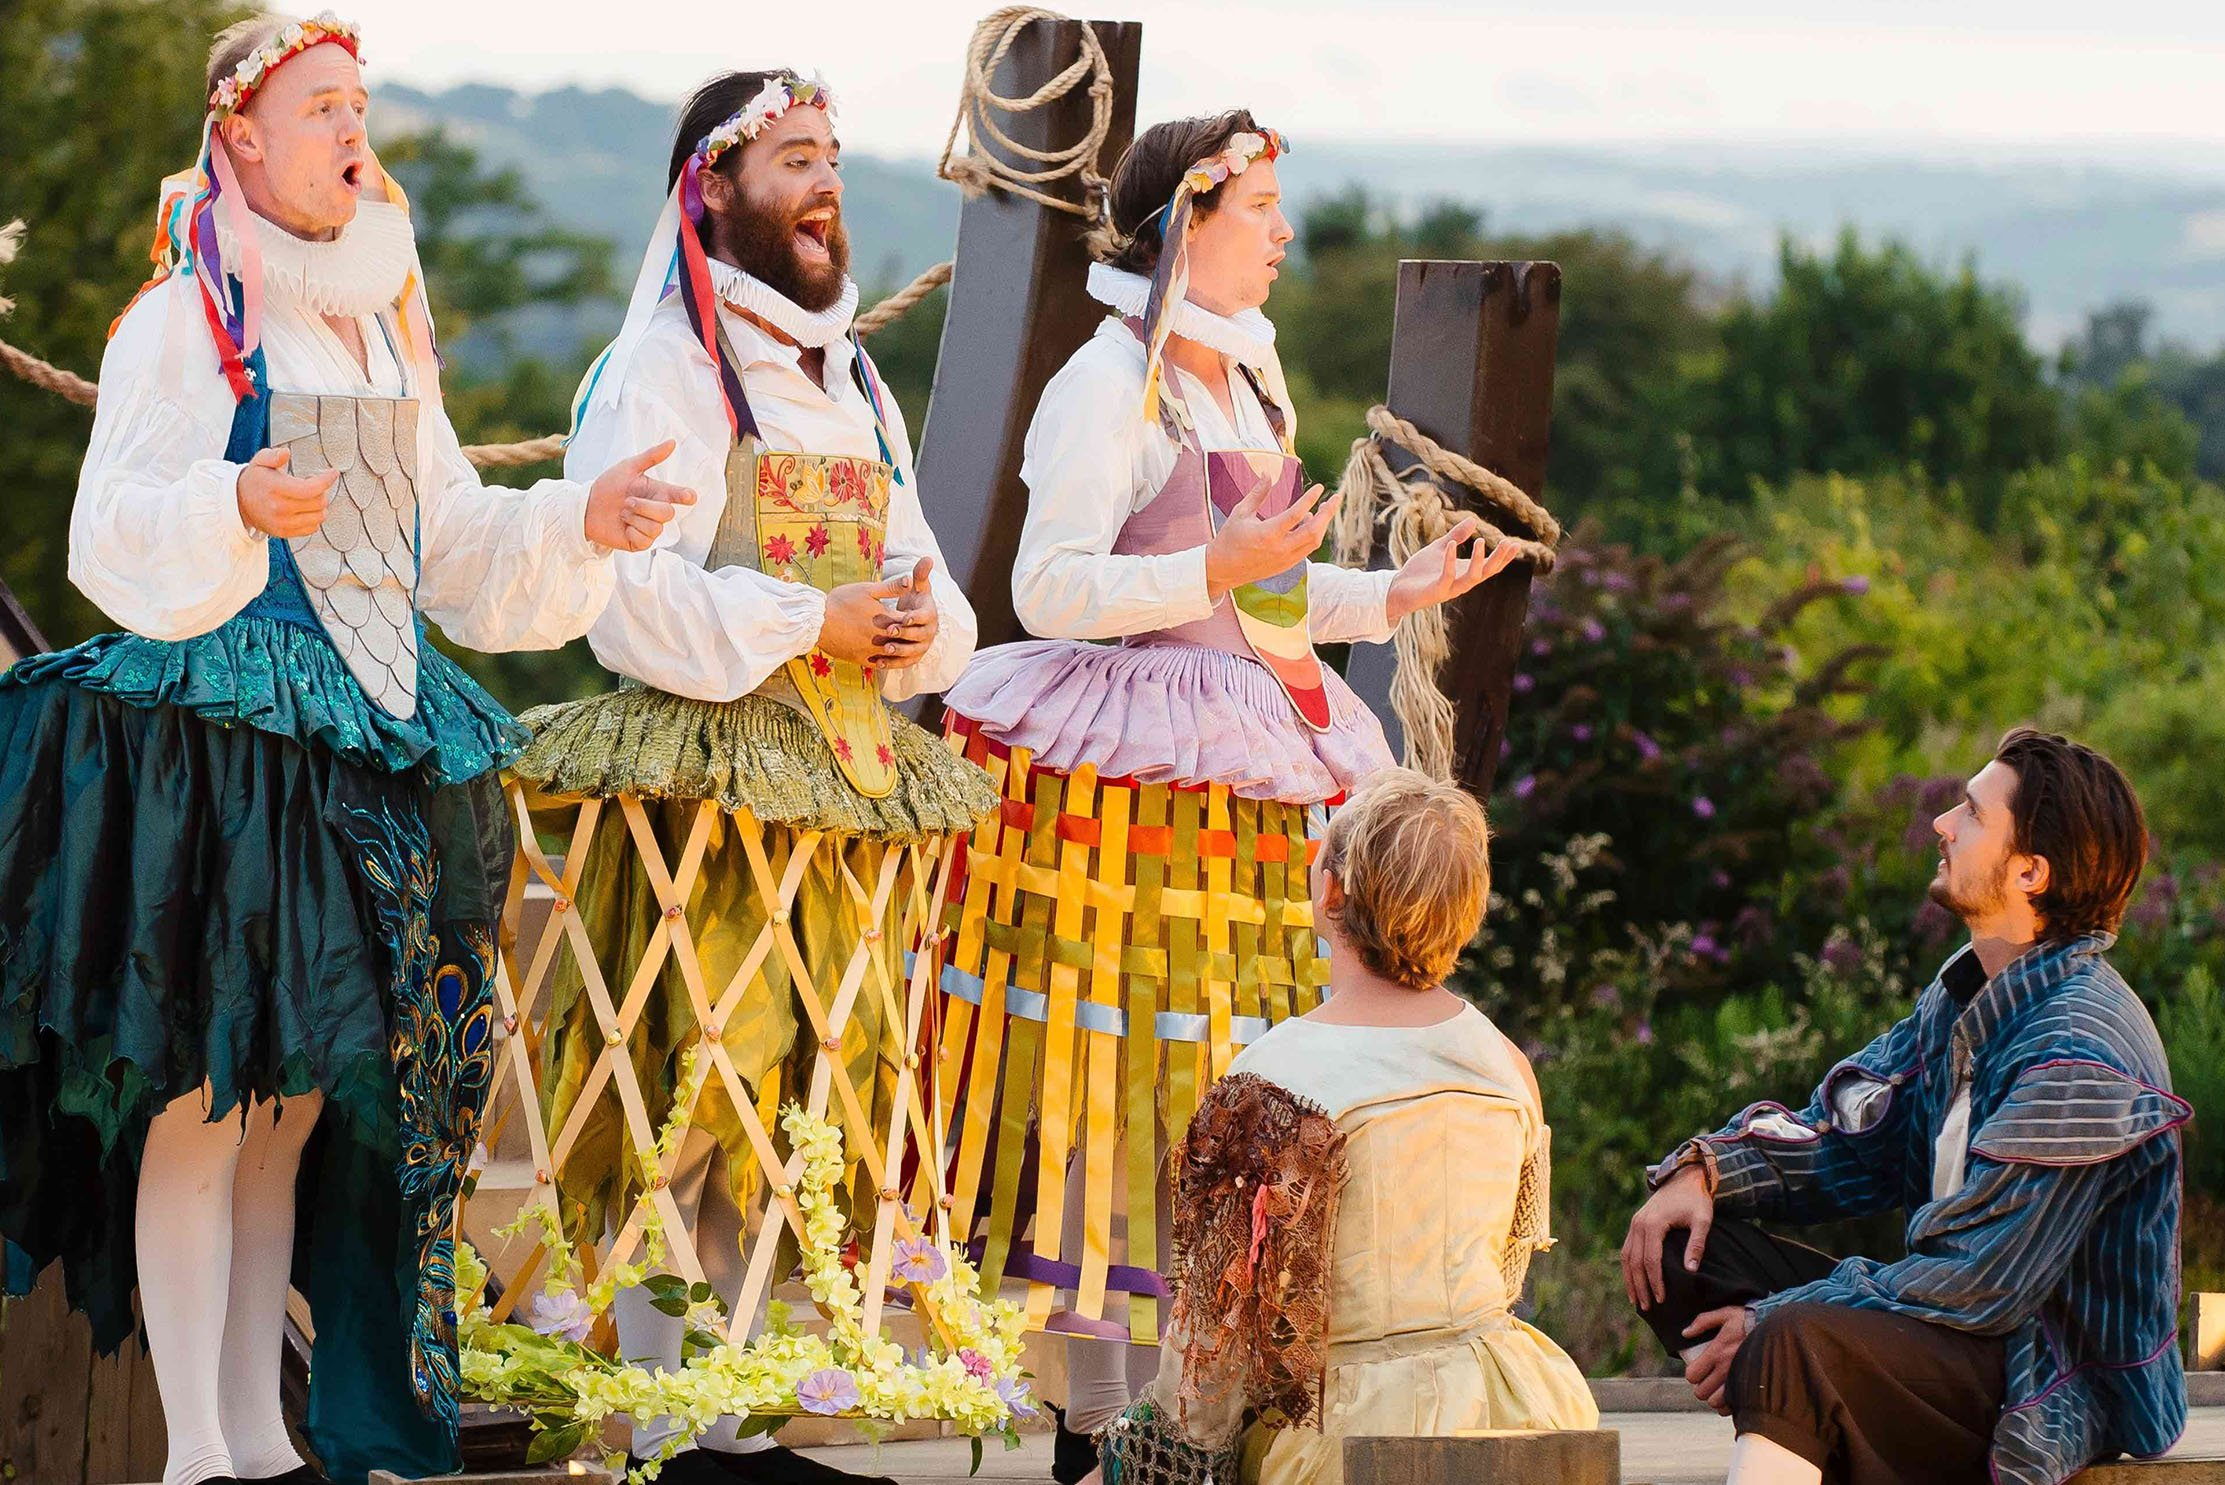 Brighton Festival - Midsummer Night's Dream